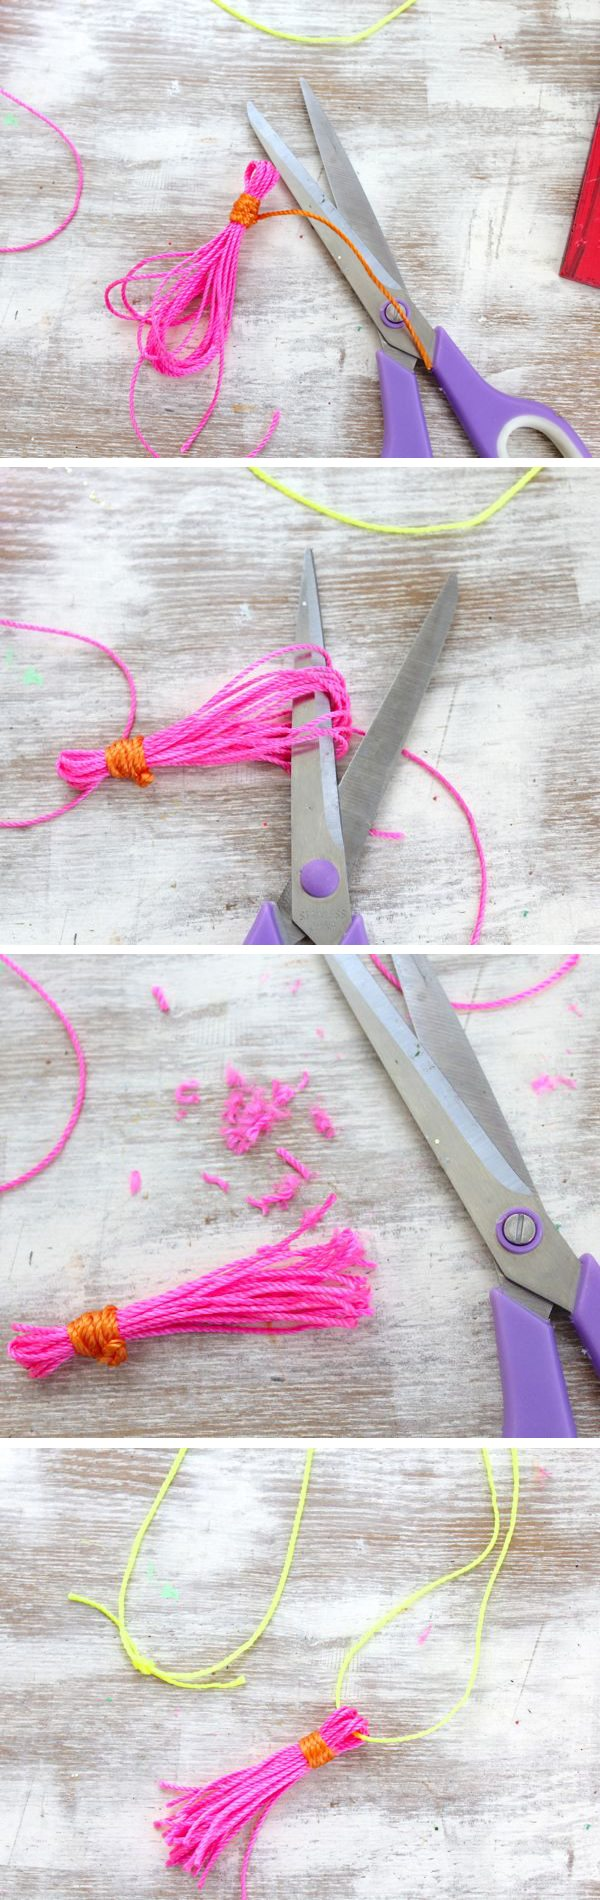 How to make a neon tassel | The Sweetest Occasion